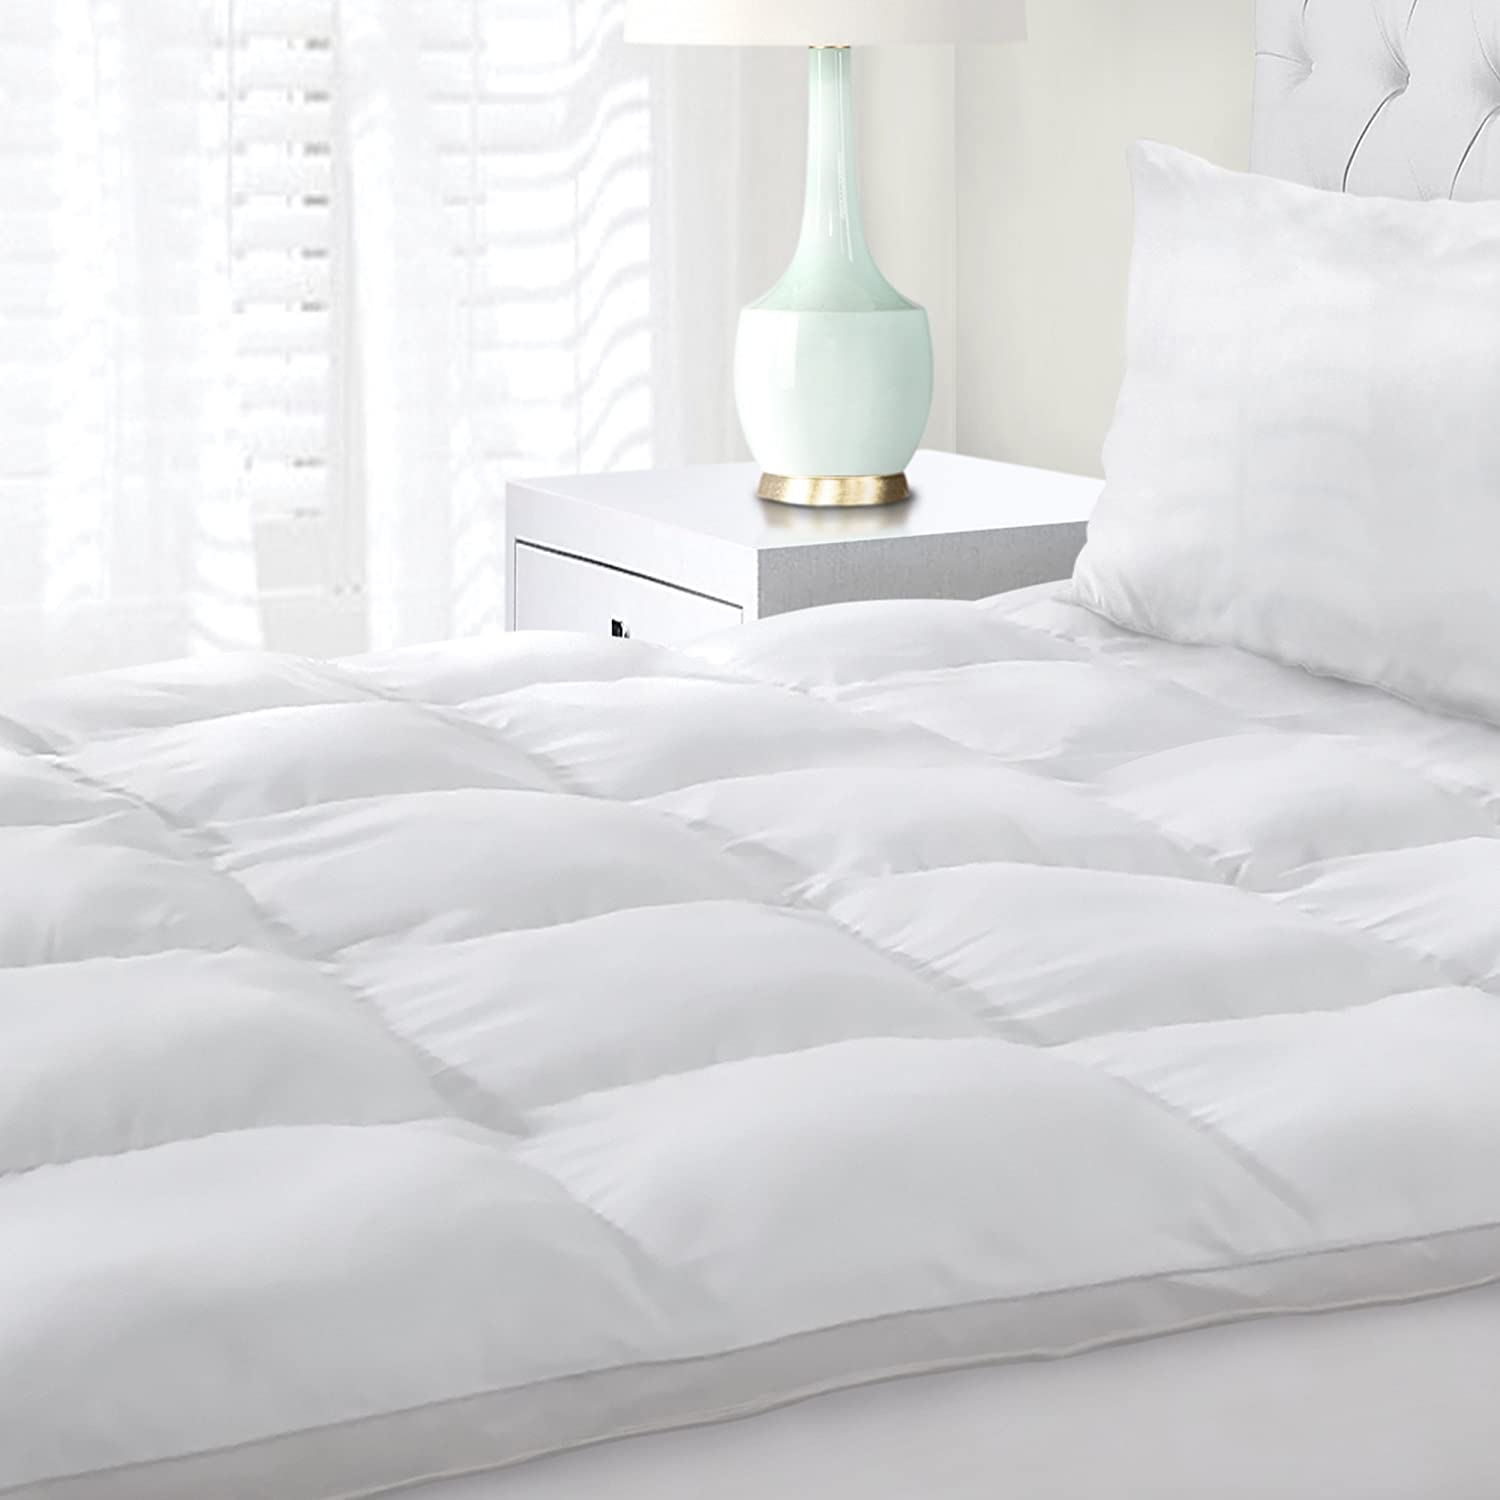 pocket online pdp mattress firm com topper buyhypnos double johnlewis spring hypnos at main top pillow superb rsp